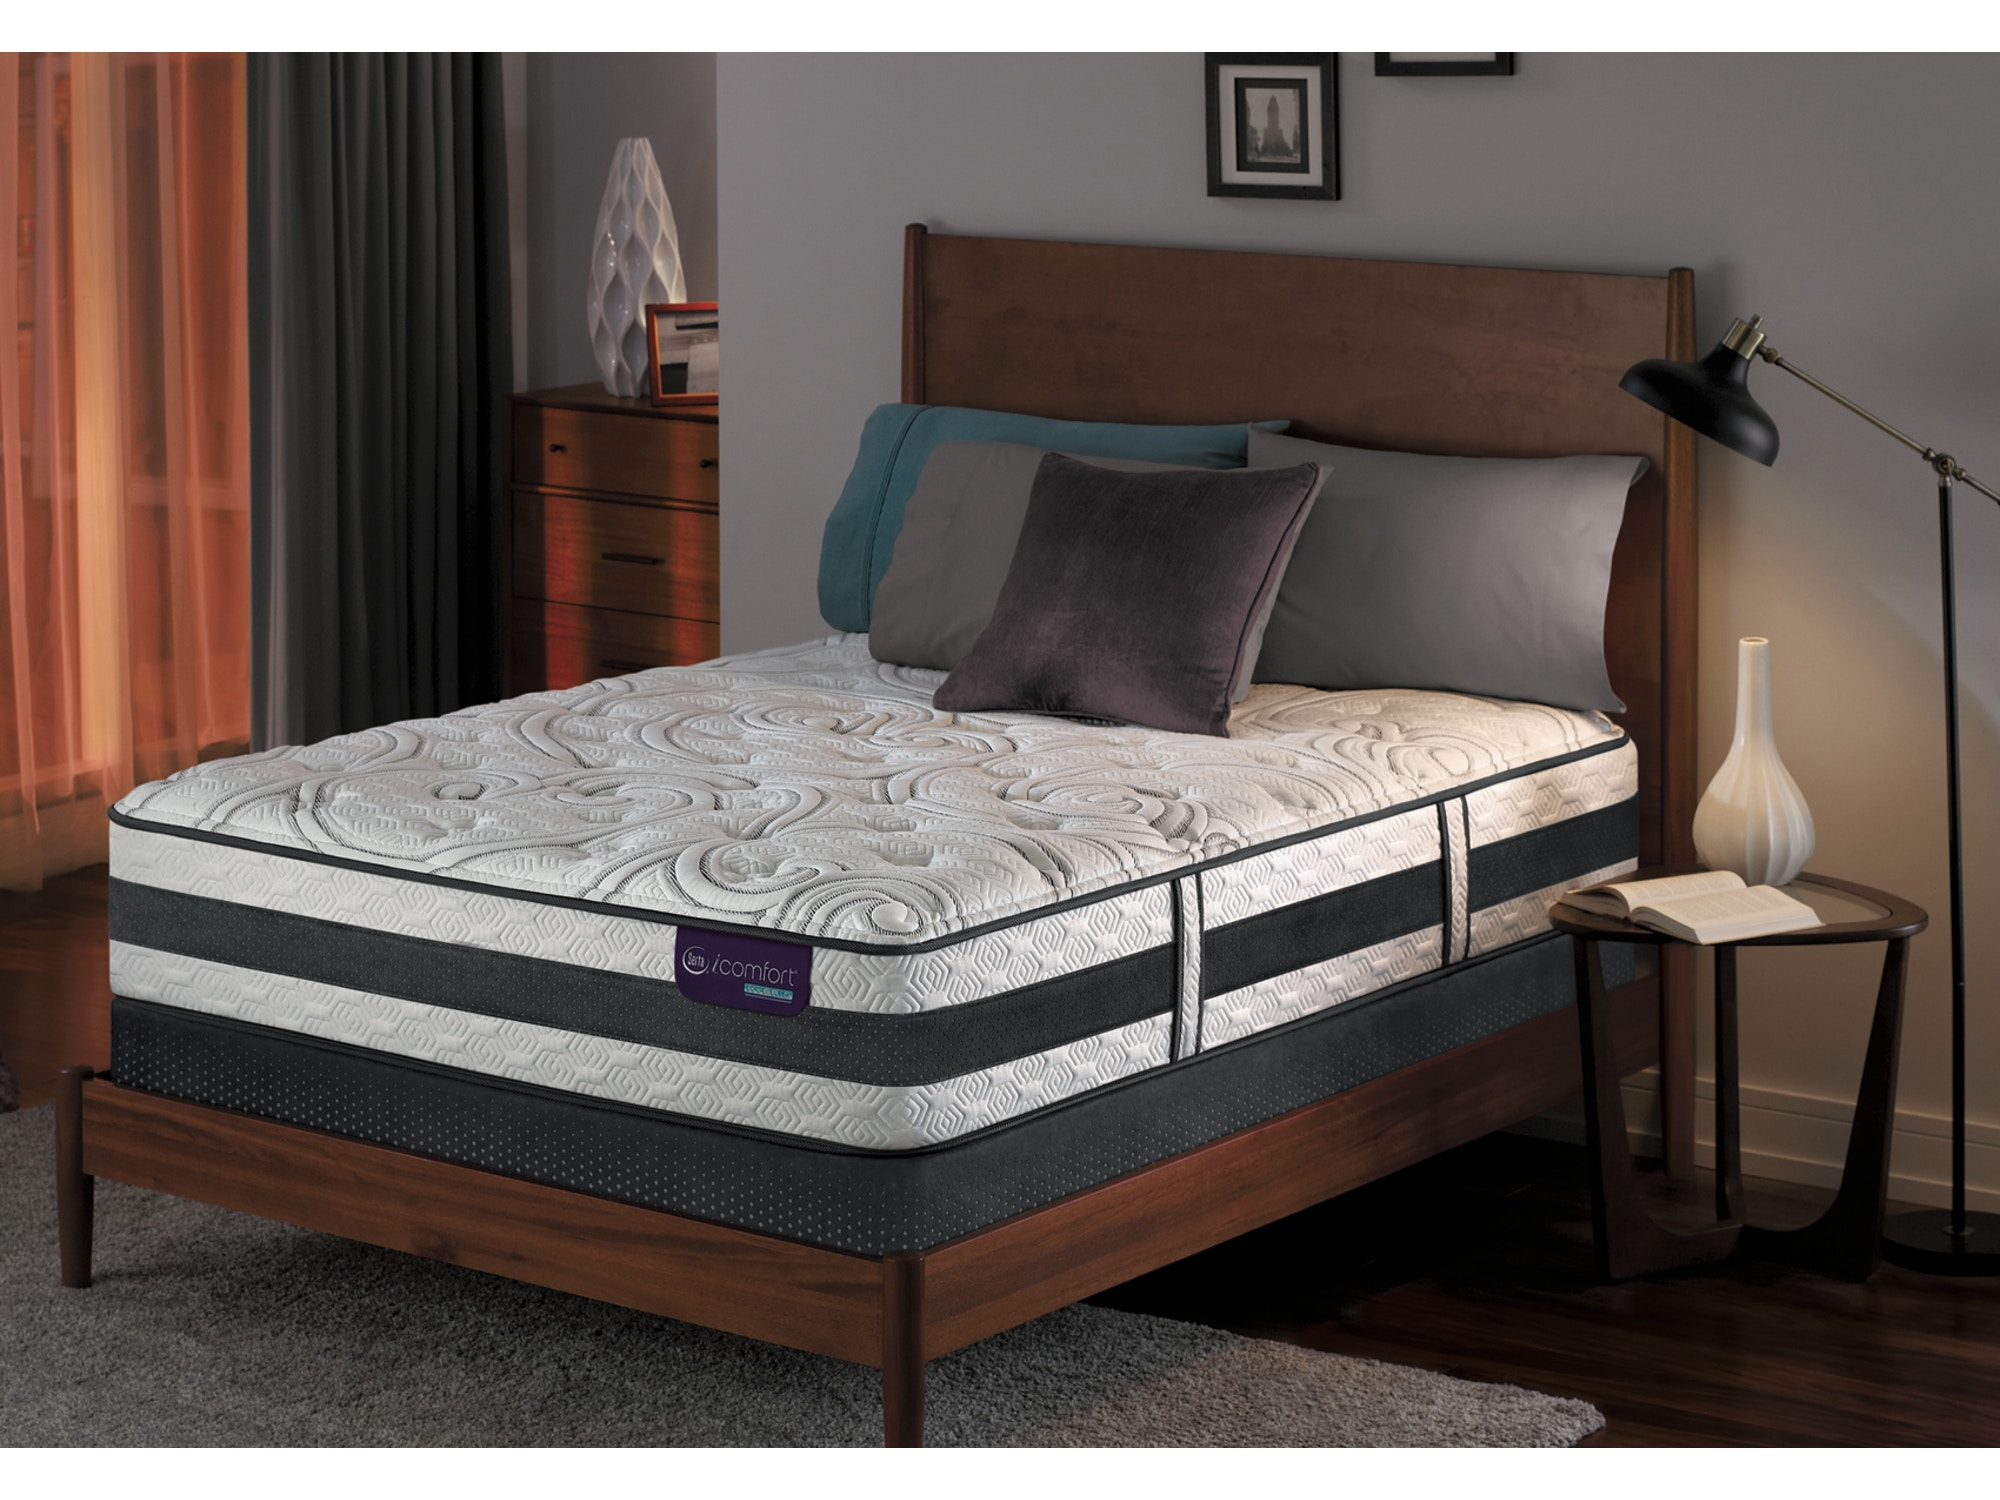 Applause II Plush Mattress Set - Queen 512200